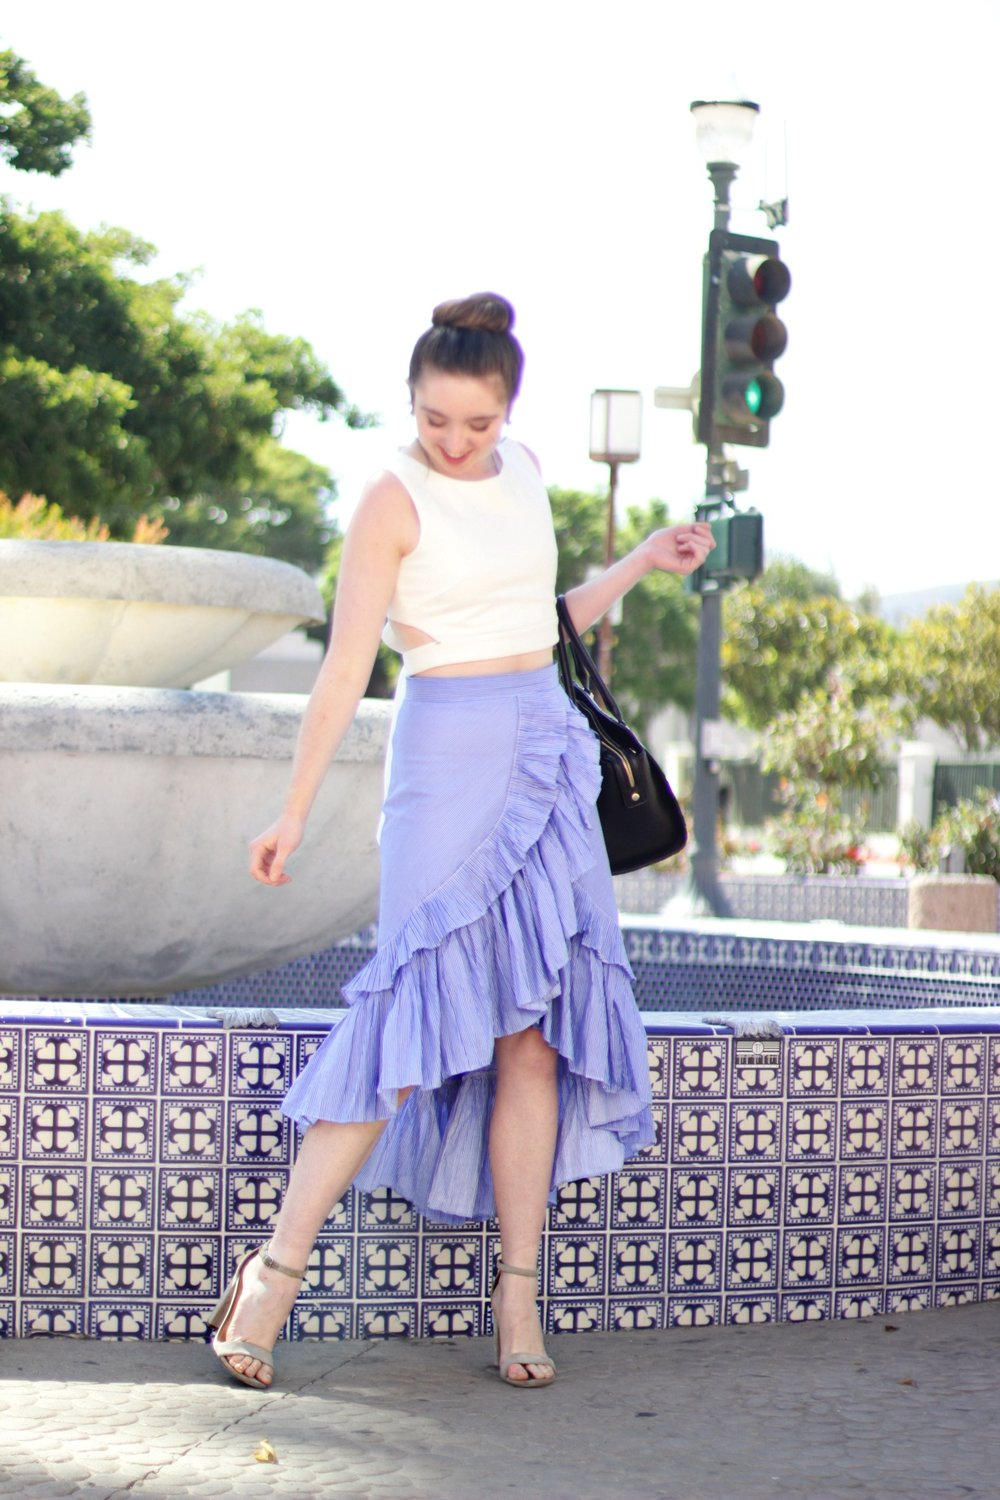 MAKE A SPLASH WITH CHICWISH - CRUSHING ON A RUFFLED WATERFALL SKIRT FROM CHICWISH